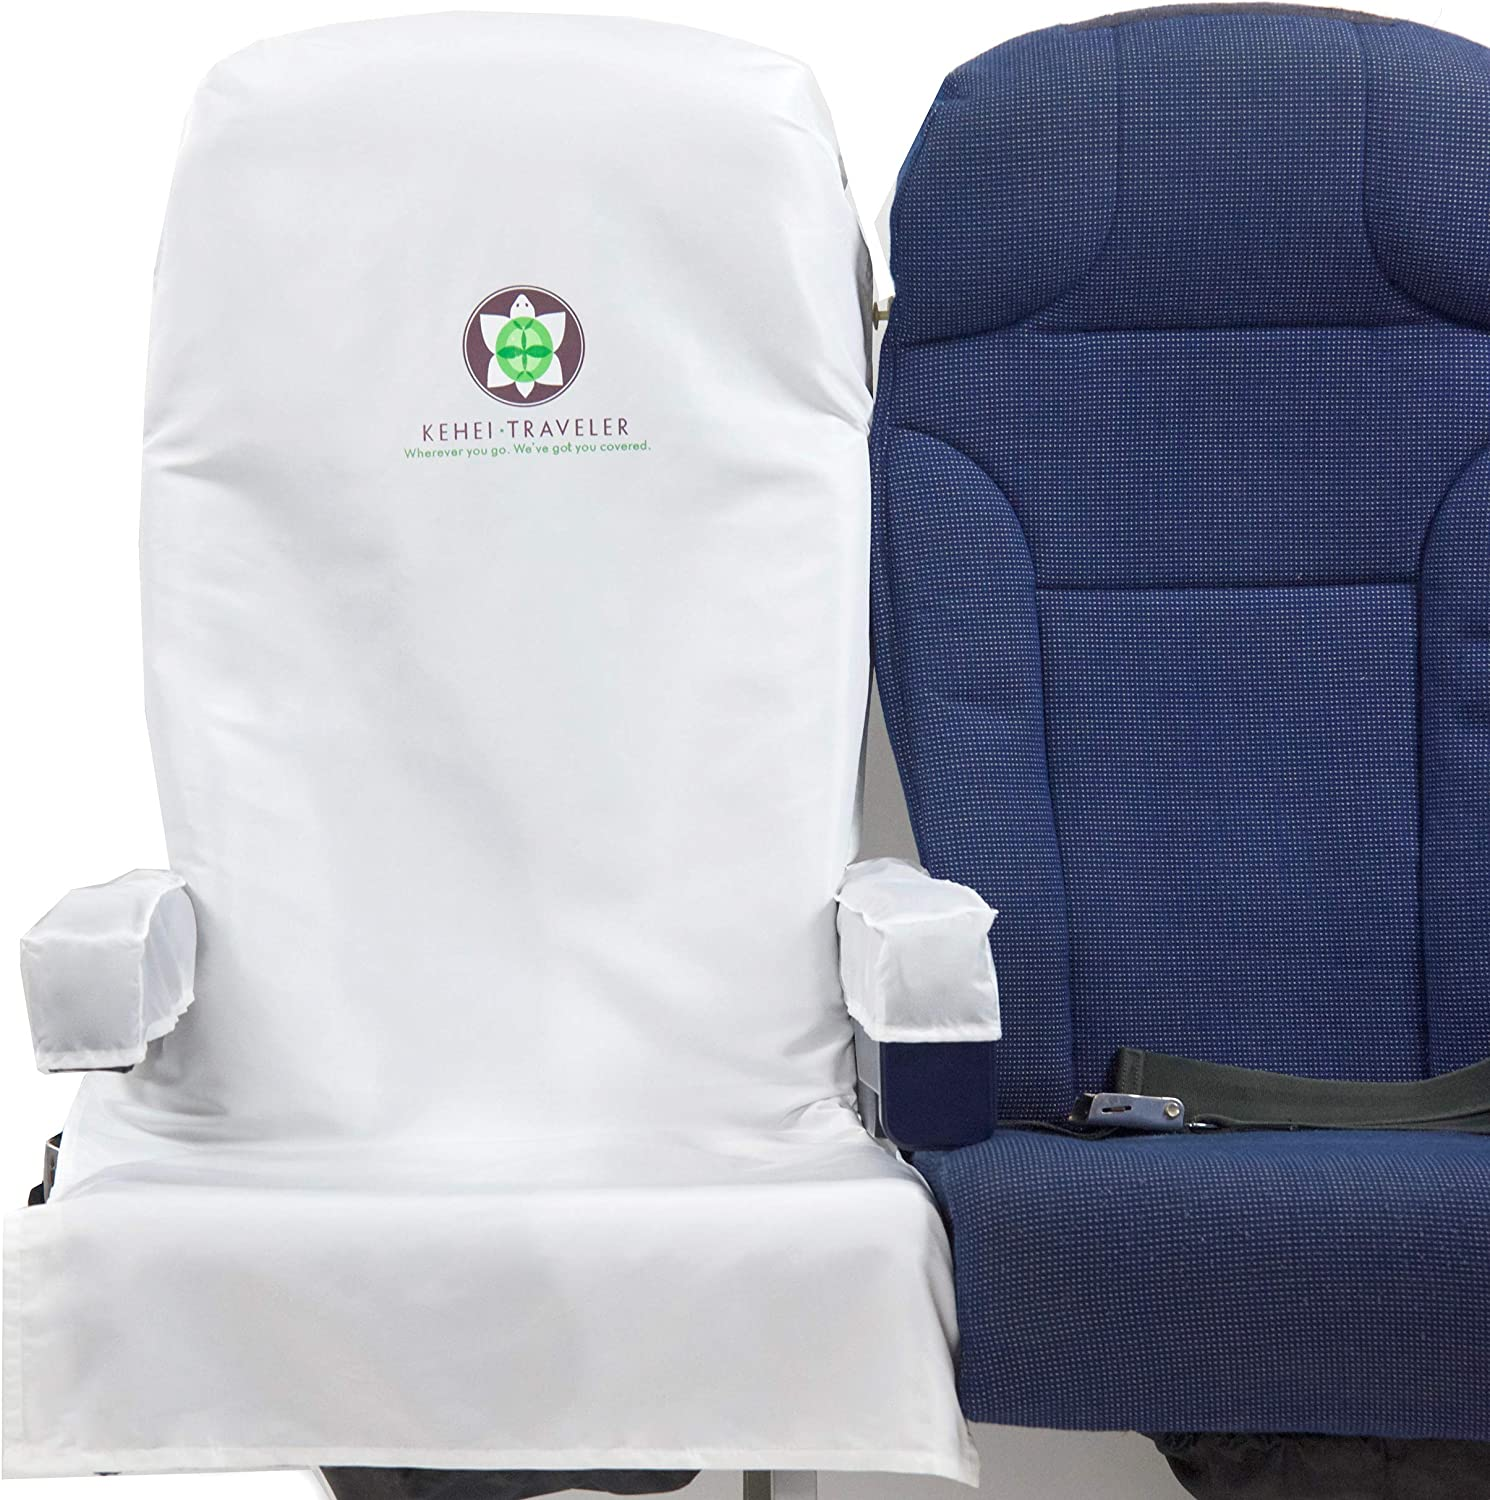 Washable Reusable Bus Fit Most Train Ride-Share Car Cotton Blend White Kehei Traveler Premium Protective Airplane Seat Cover with Arm Rest and Tray Table Covers /& Pouch Other Public Seating